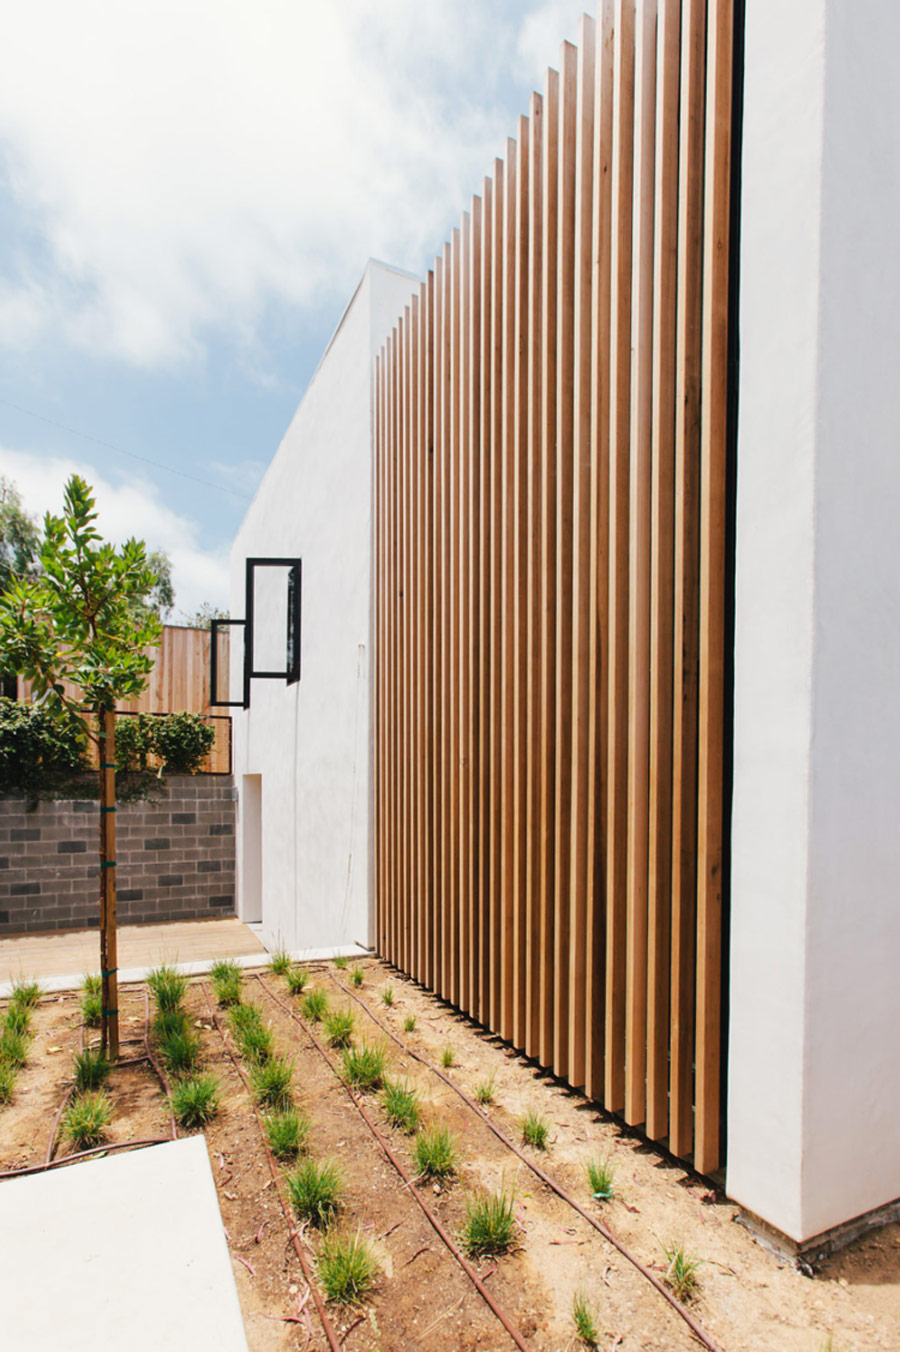 Outside the house is done in white and clad with wood, there's minimalist landscaping